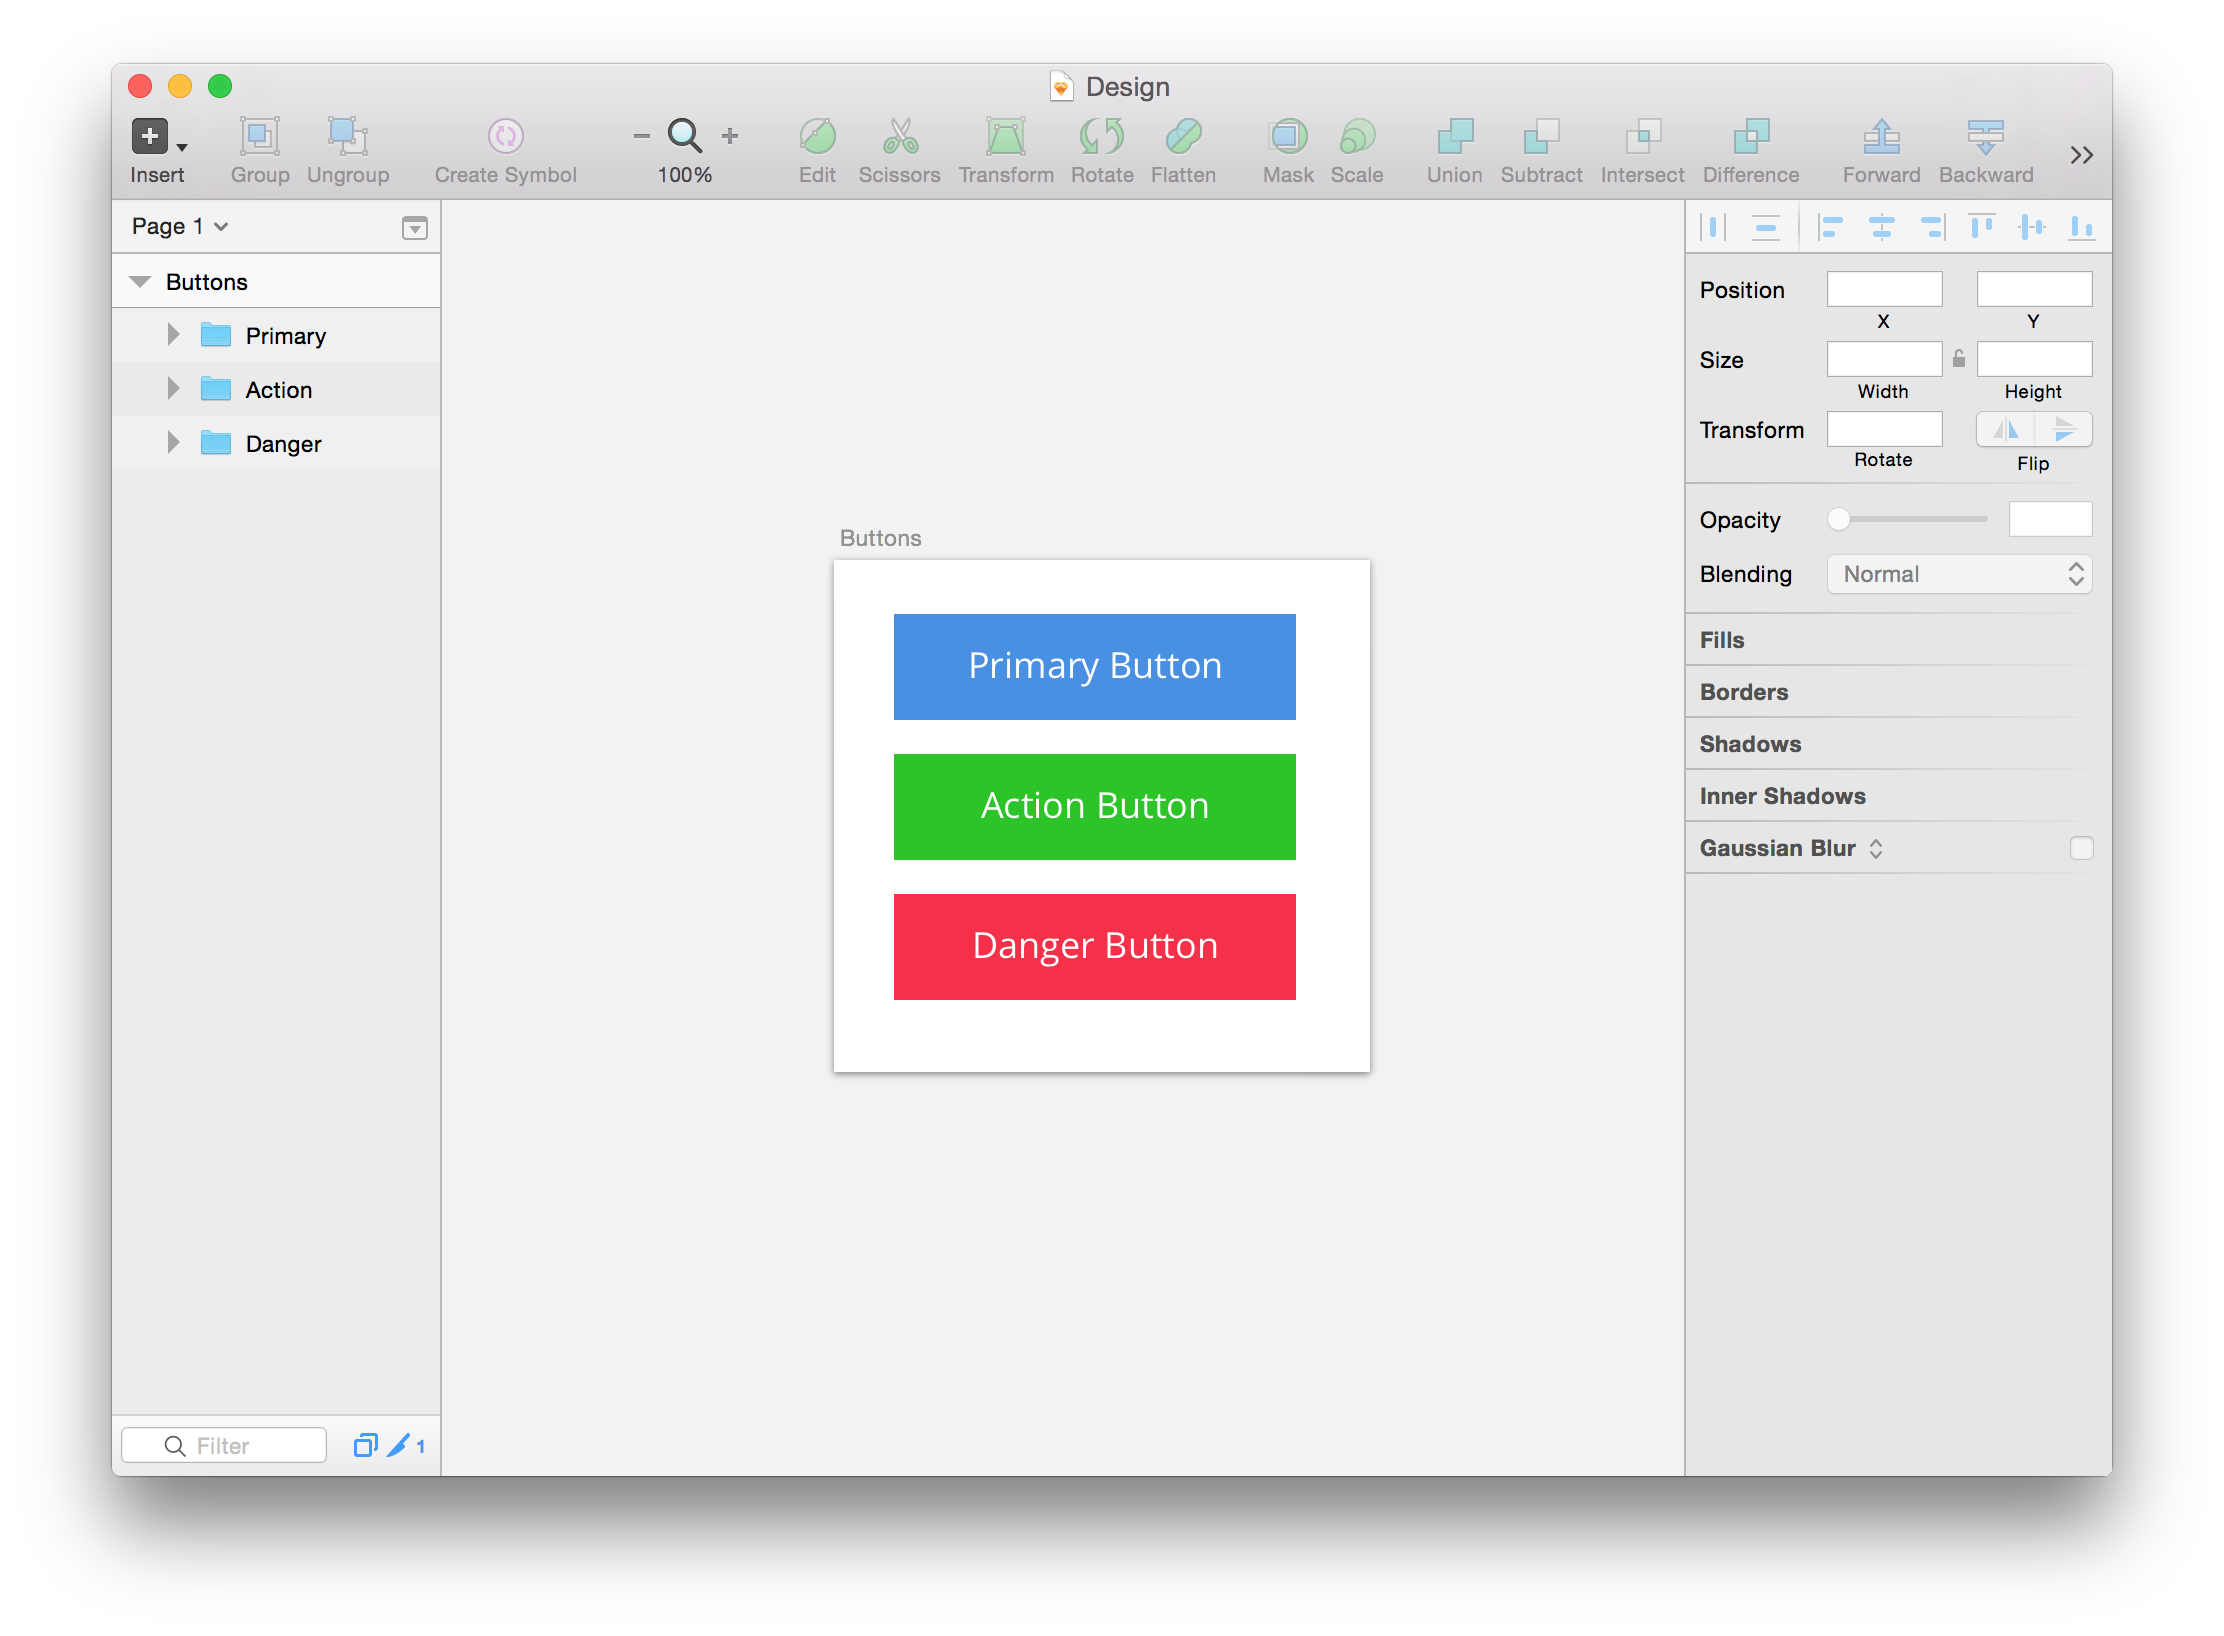 Style Guide For Designers The Design Share Control Workflow By Mariz Melo Design Sketch Medium